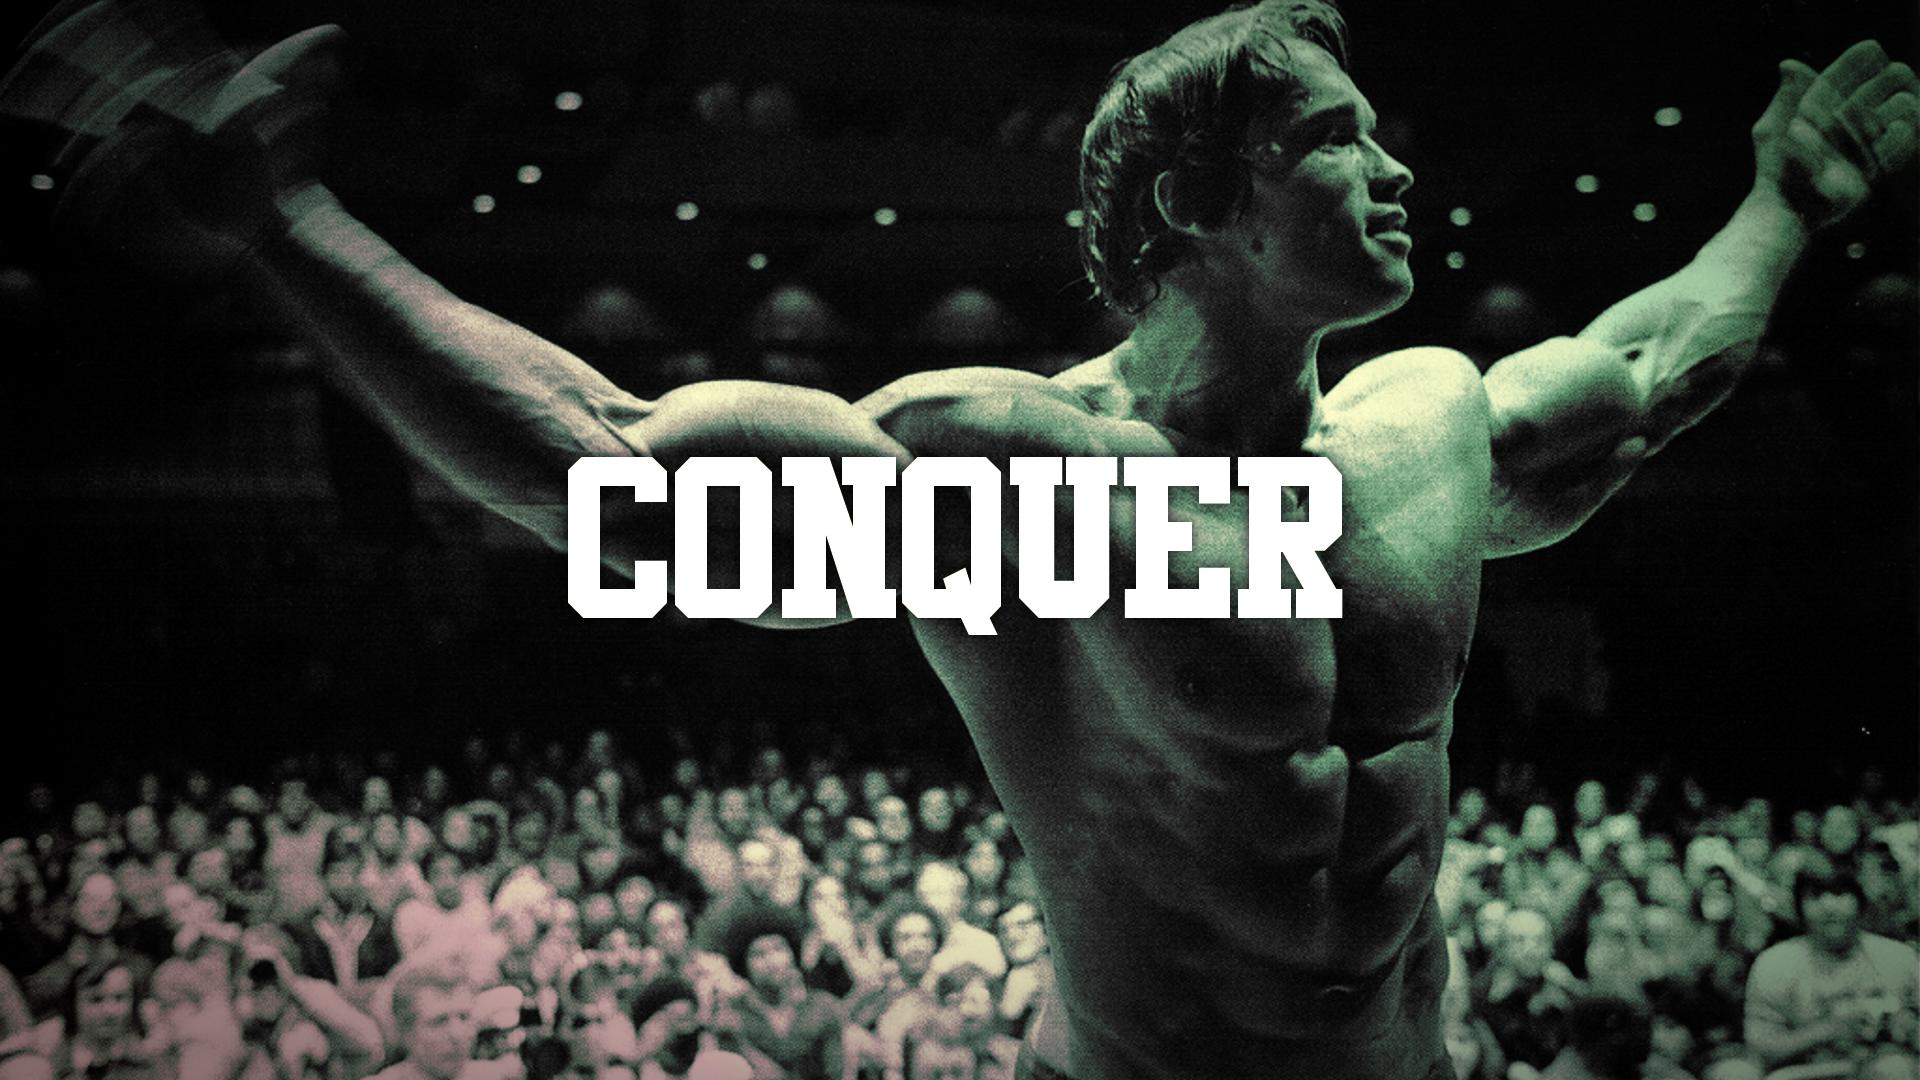 Arnold Schwarzenegger Conquer Muscle Bodybuilding wallpaper background 1920x1080